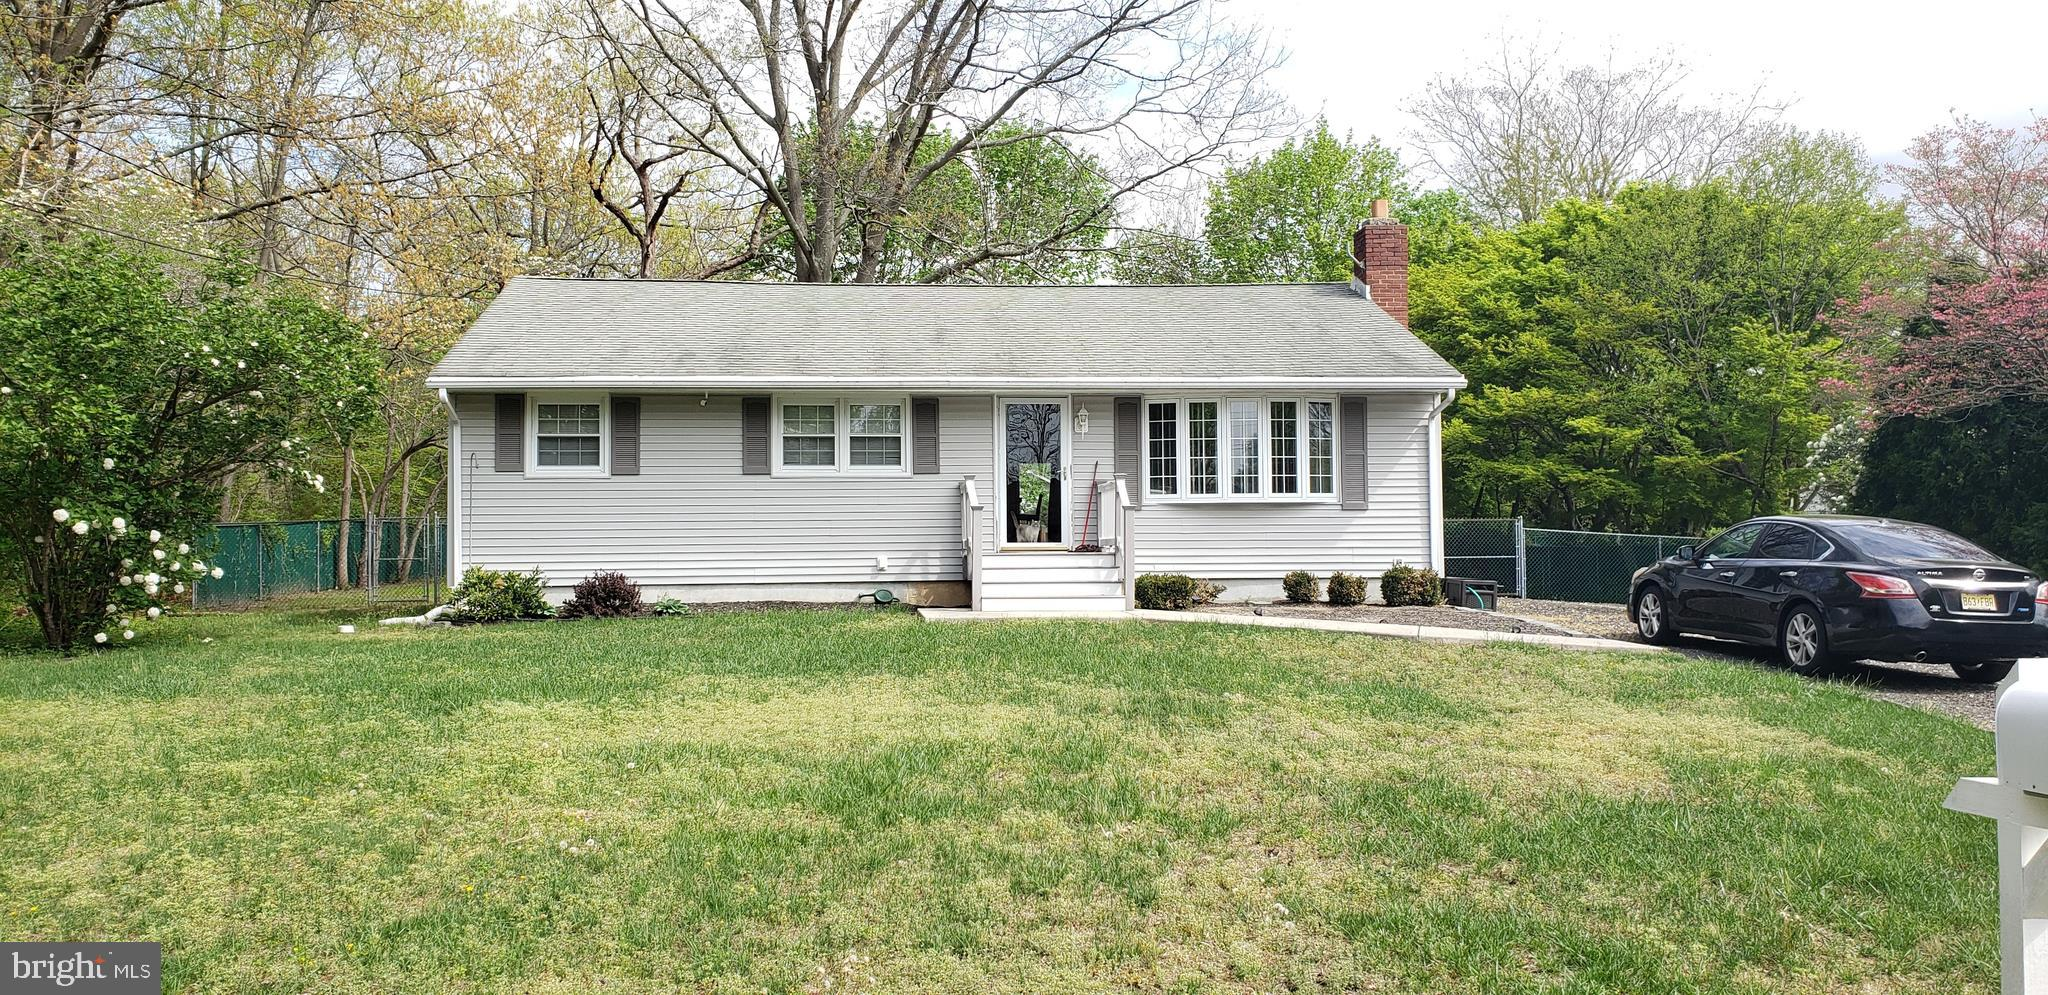 214 SOUTH AVENUE, MINOTOLA, NJ 08341